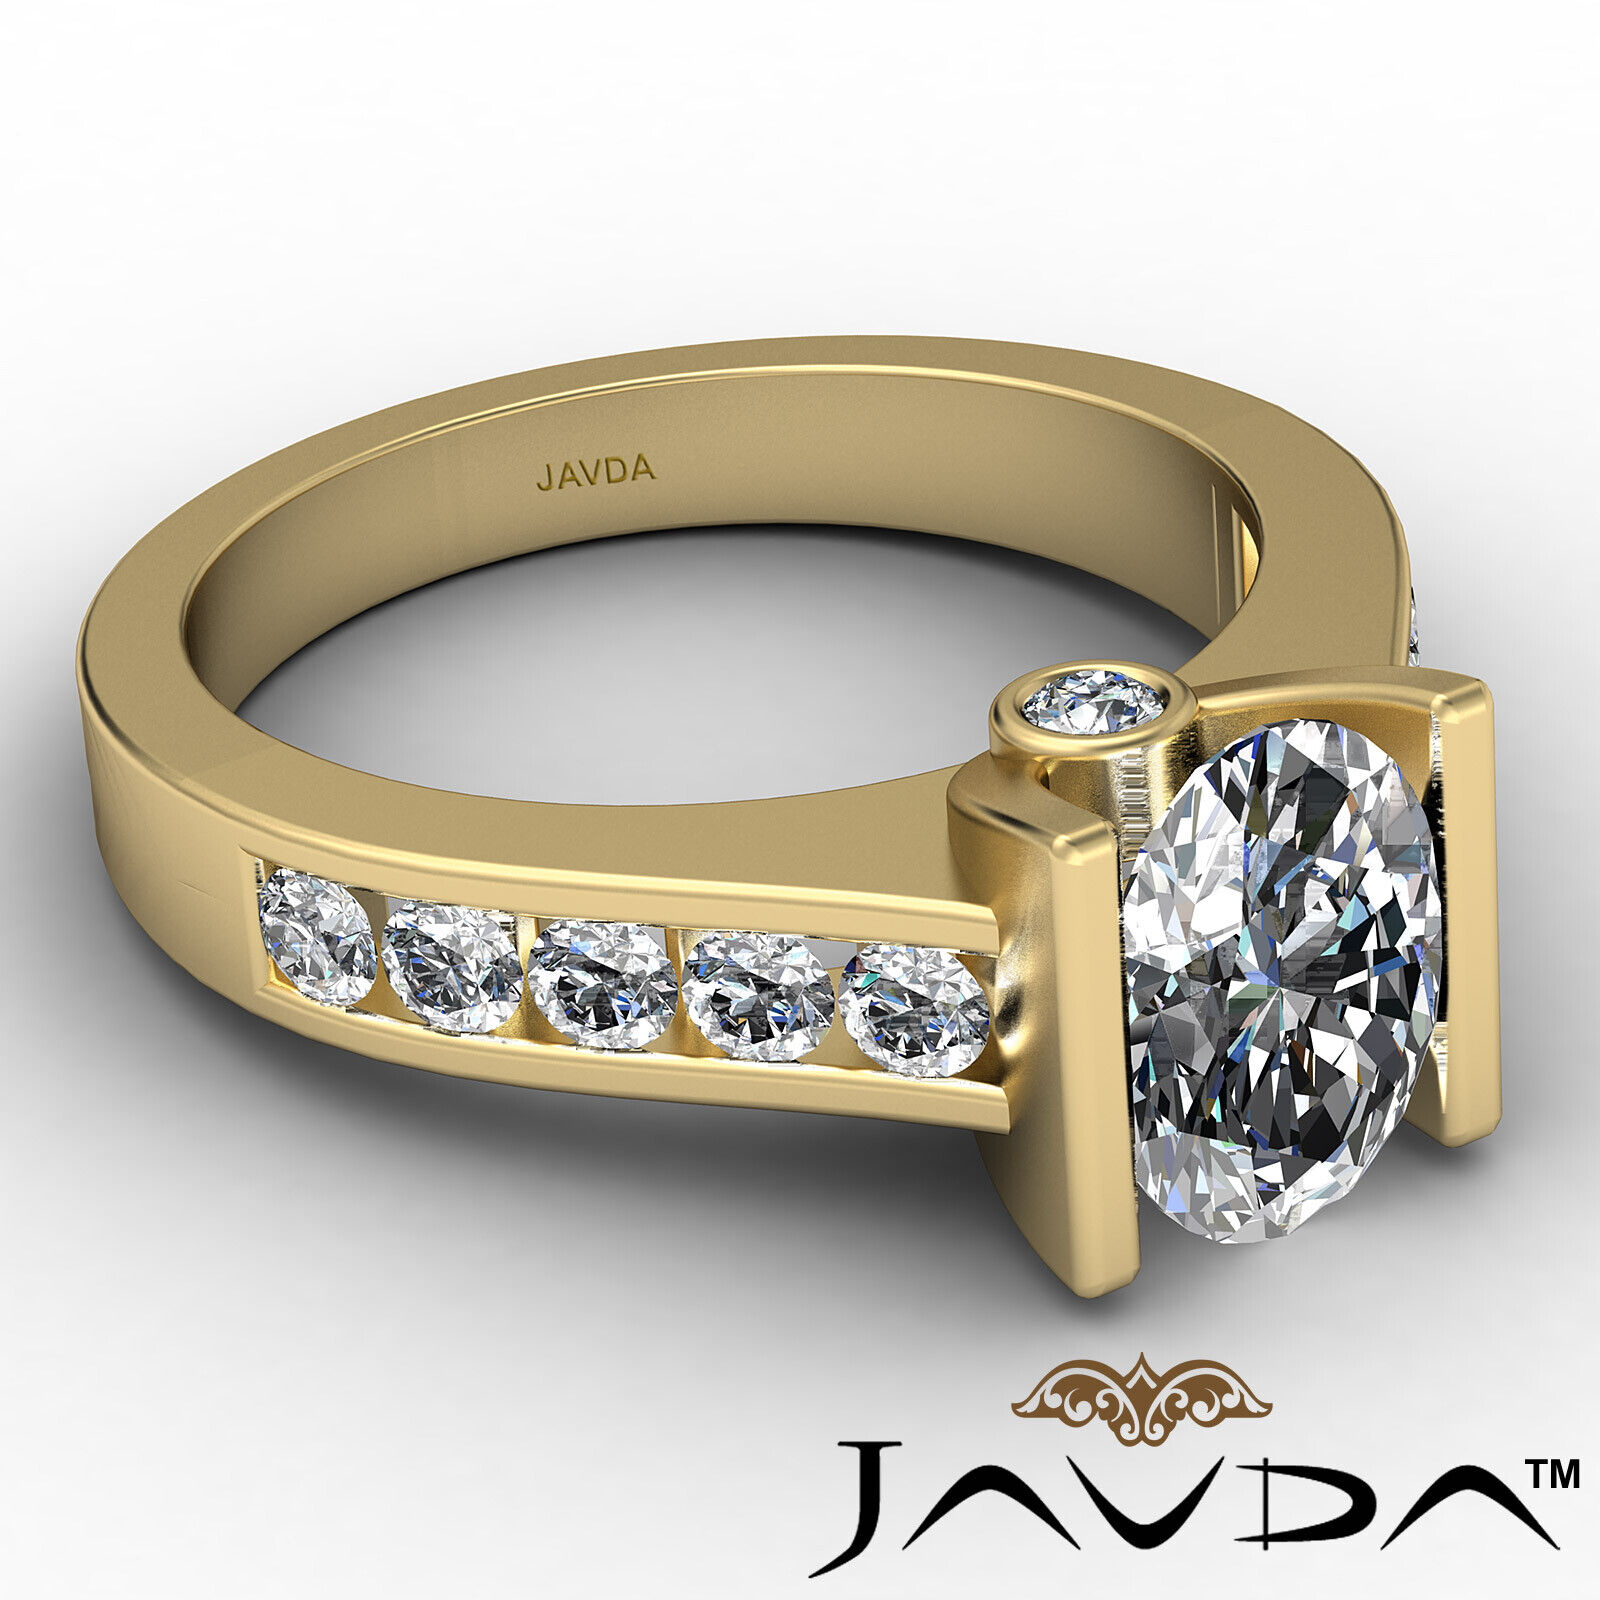 Oval Diamond Engagement Bezel Setting Ring GIA, E Color & SI2 clarity 1.4 ctw. 7